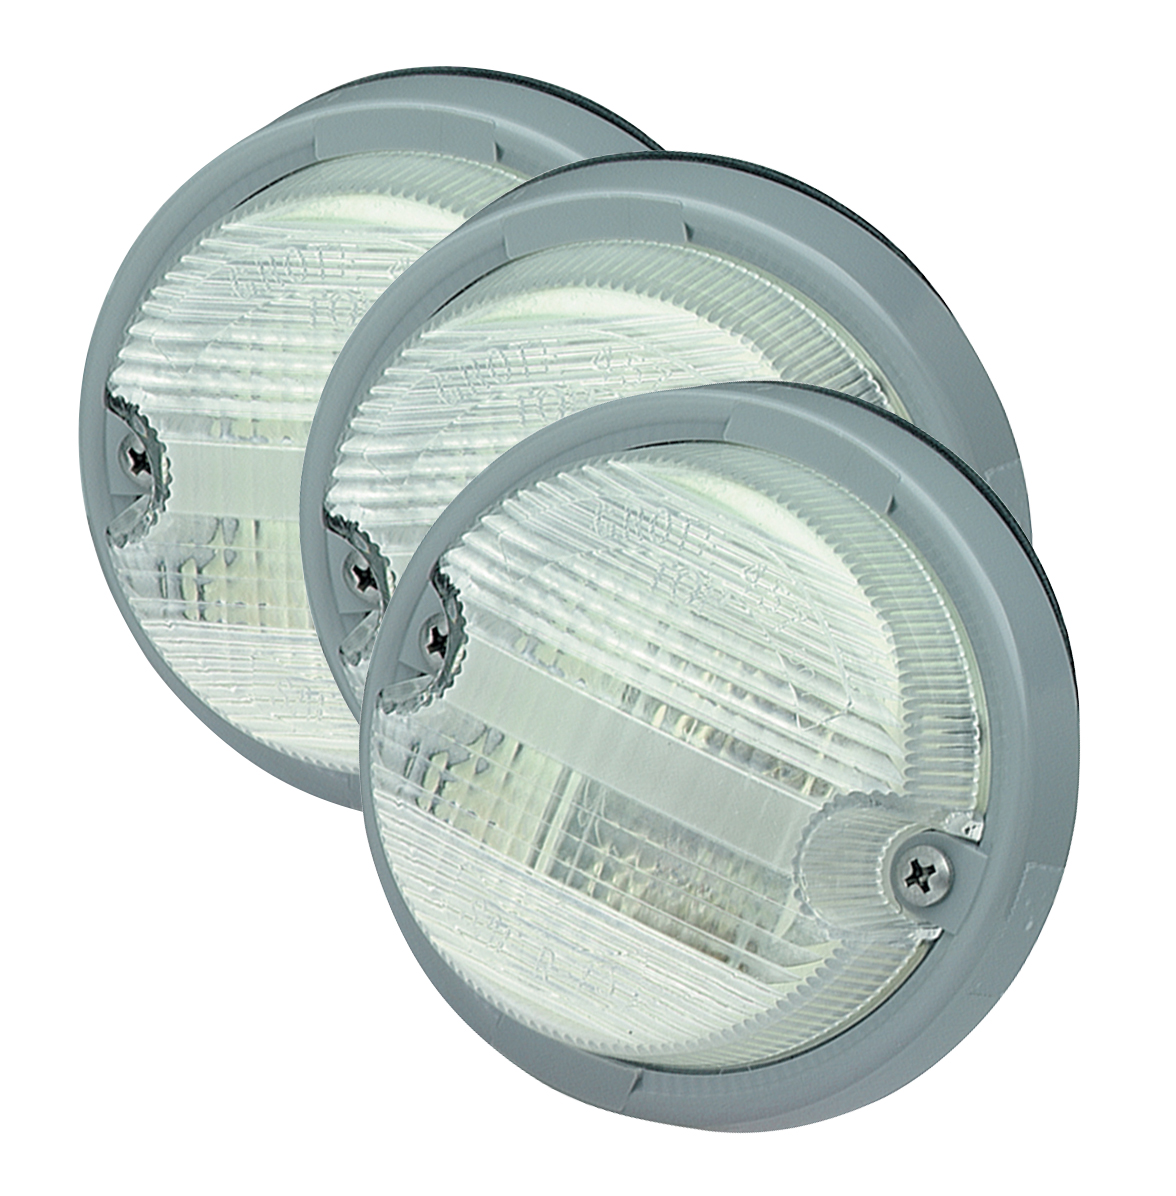 Grote Industries - 62011-3 – OE-Style Dual-System Backup Light, Gray Bezel, Clear, Bulk Pack